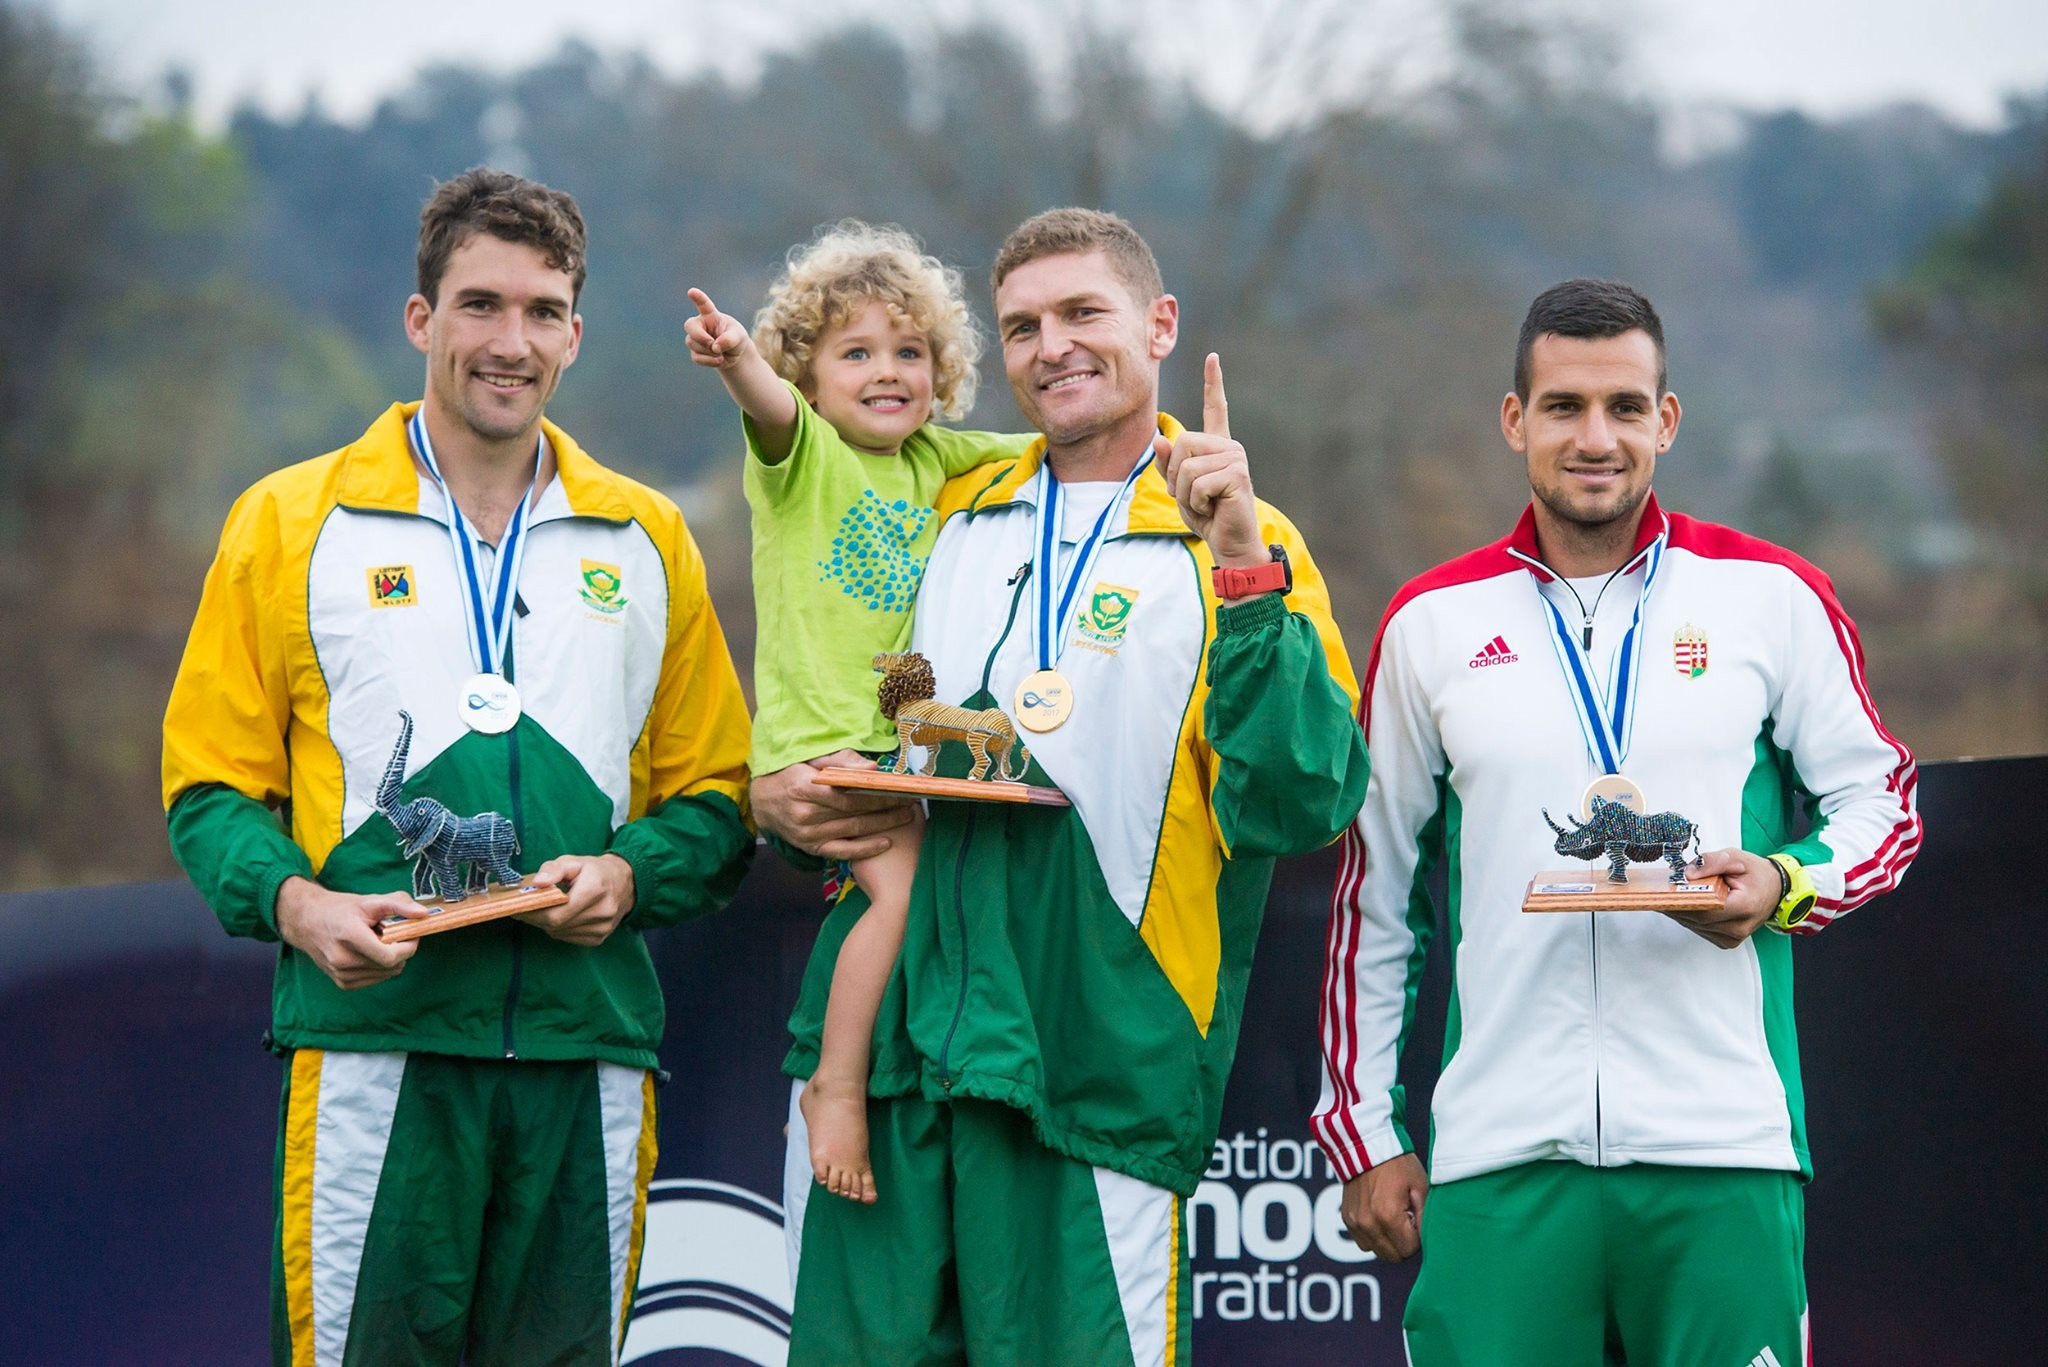 McGregor wins fifth ICF Canoe Marathon World Championships K1 title in a row